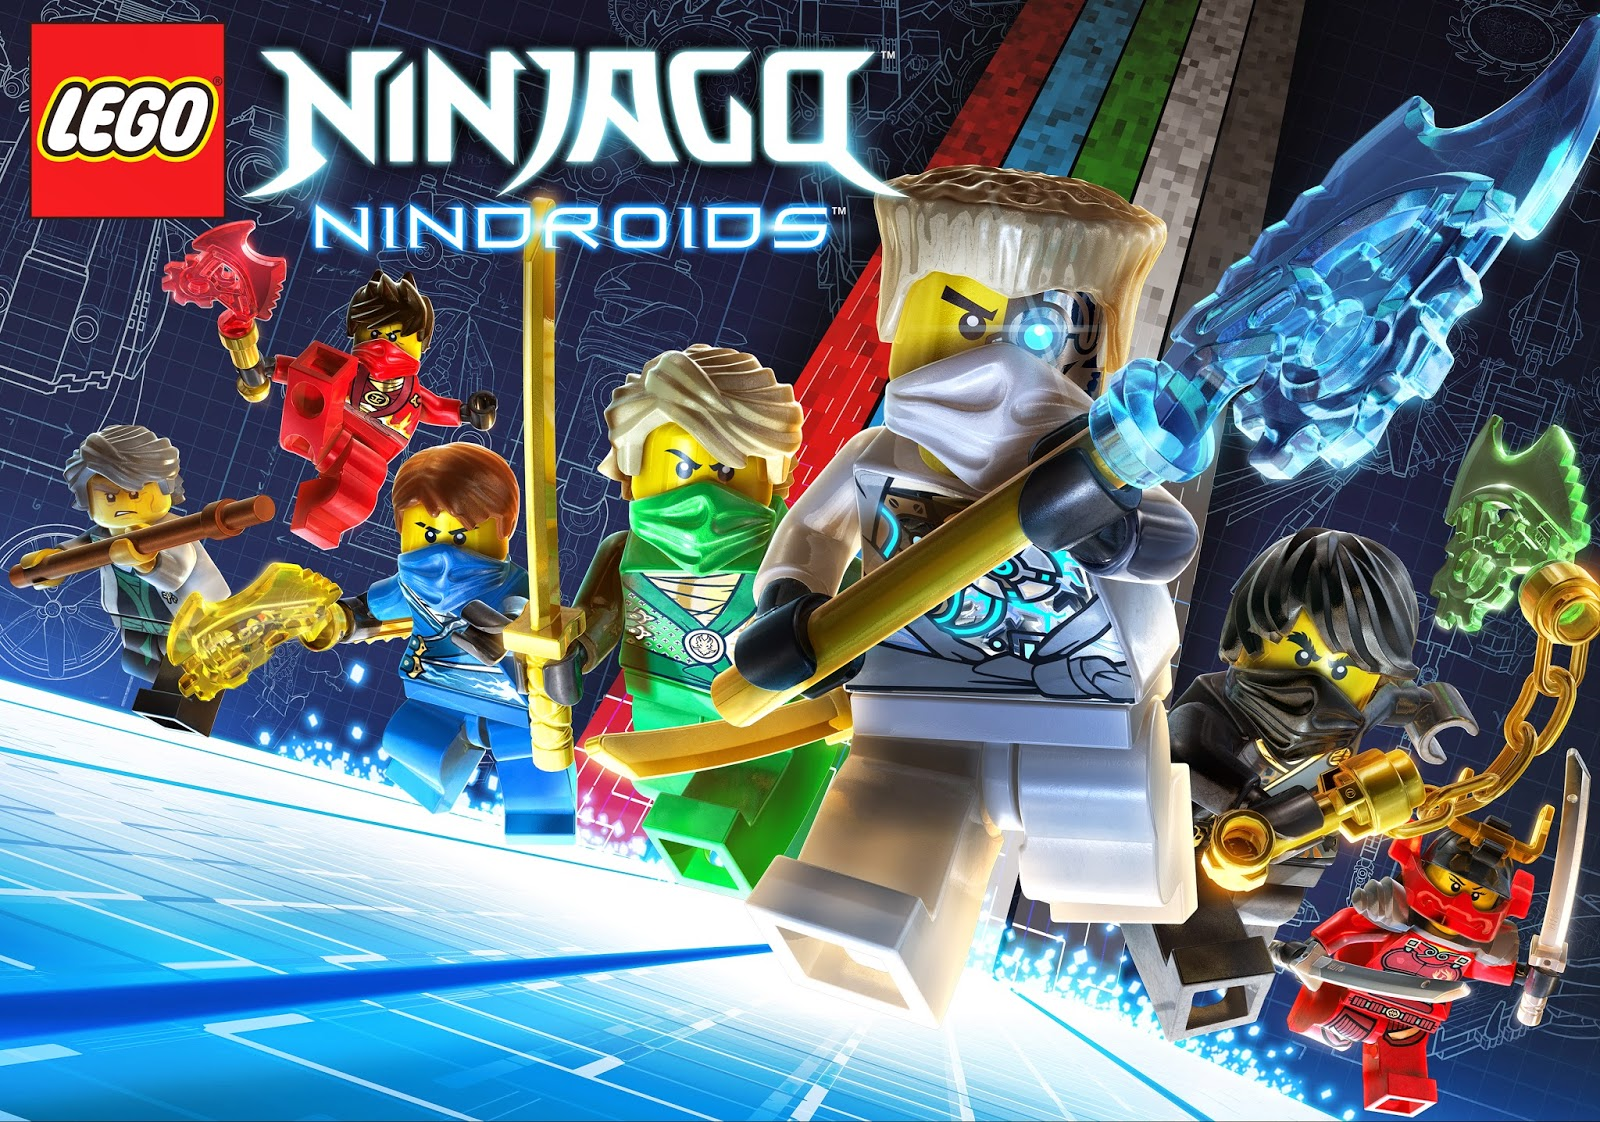 Lego Ninjago Rebooted Episode 29 Part 1 – Dibujos Para Colorear